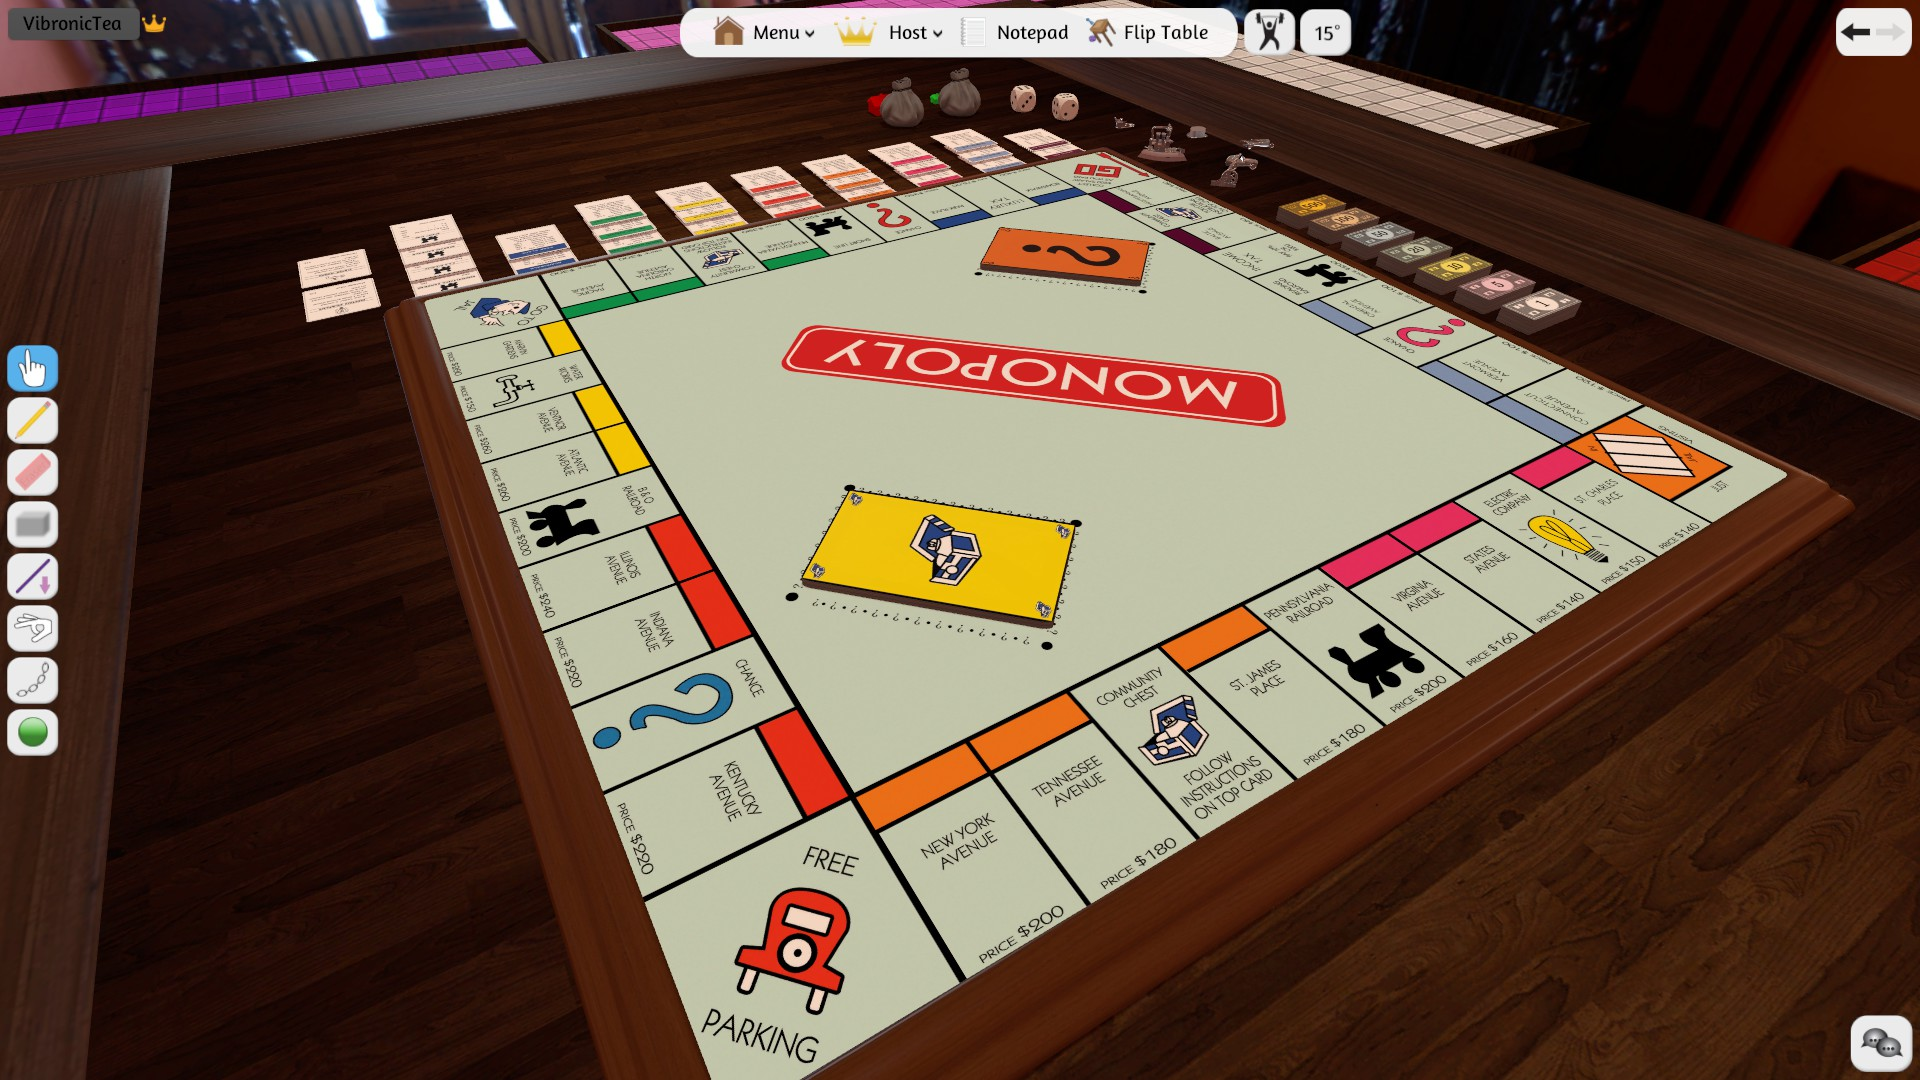 You can host a virtual Monopoly night in Tabletop Simulator